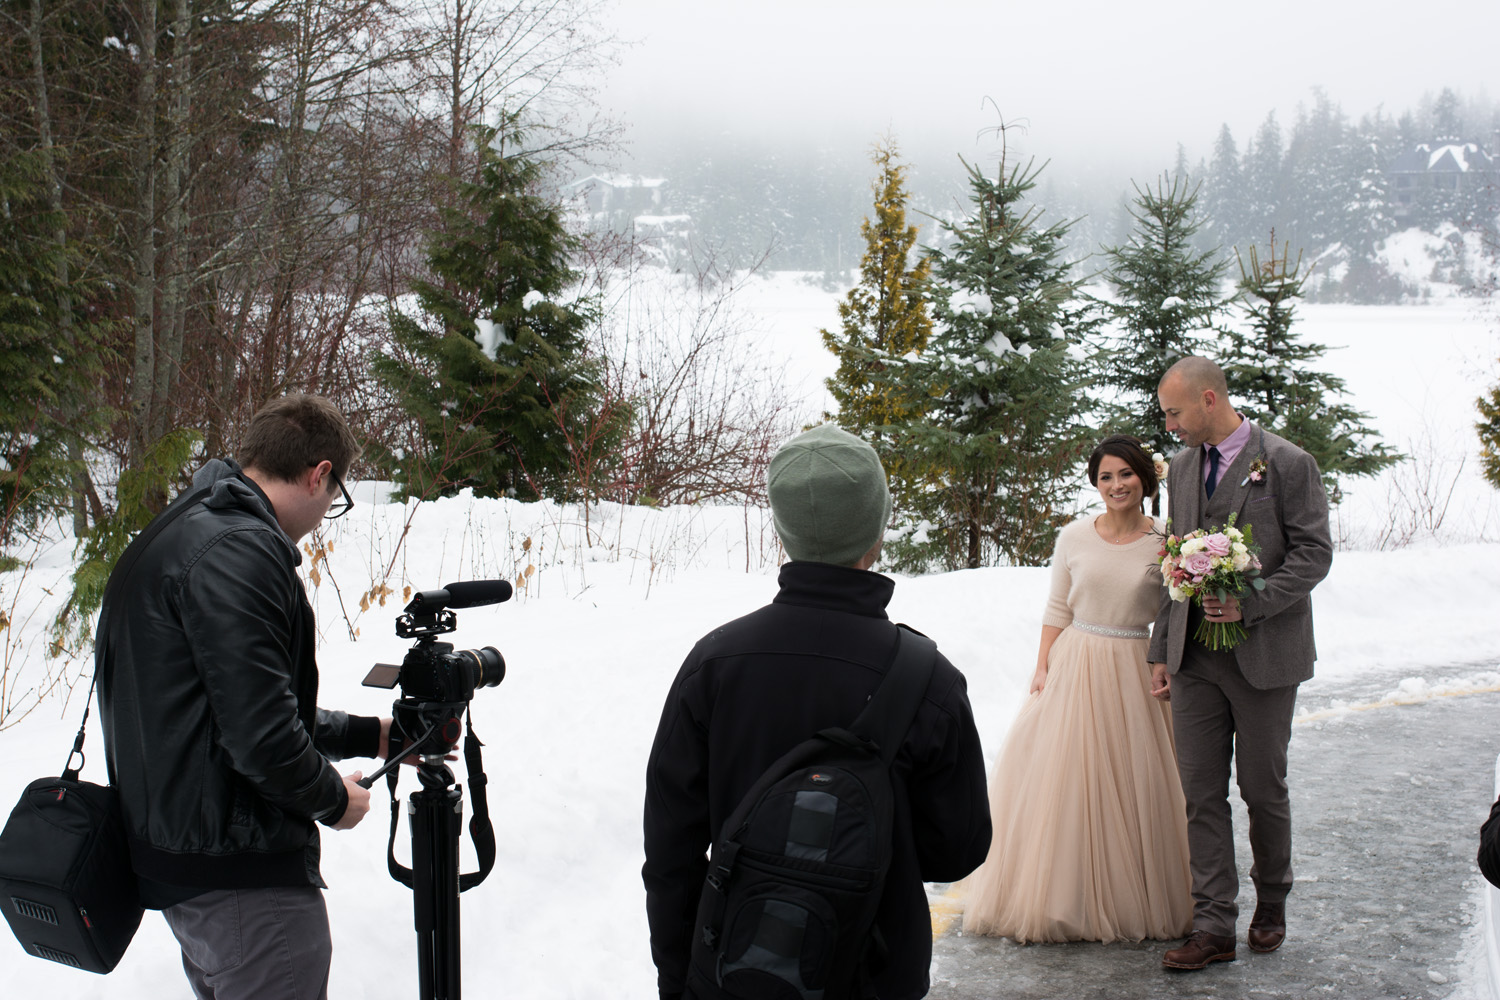 This was our first wedding where we had to shoot in the snow and it was cold!Luckily we came prepared with gloves and hot packs.